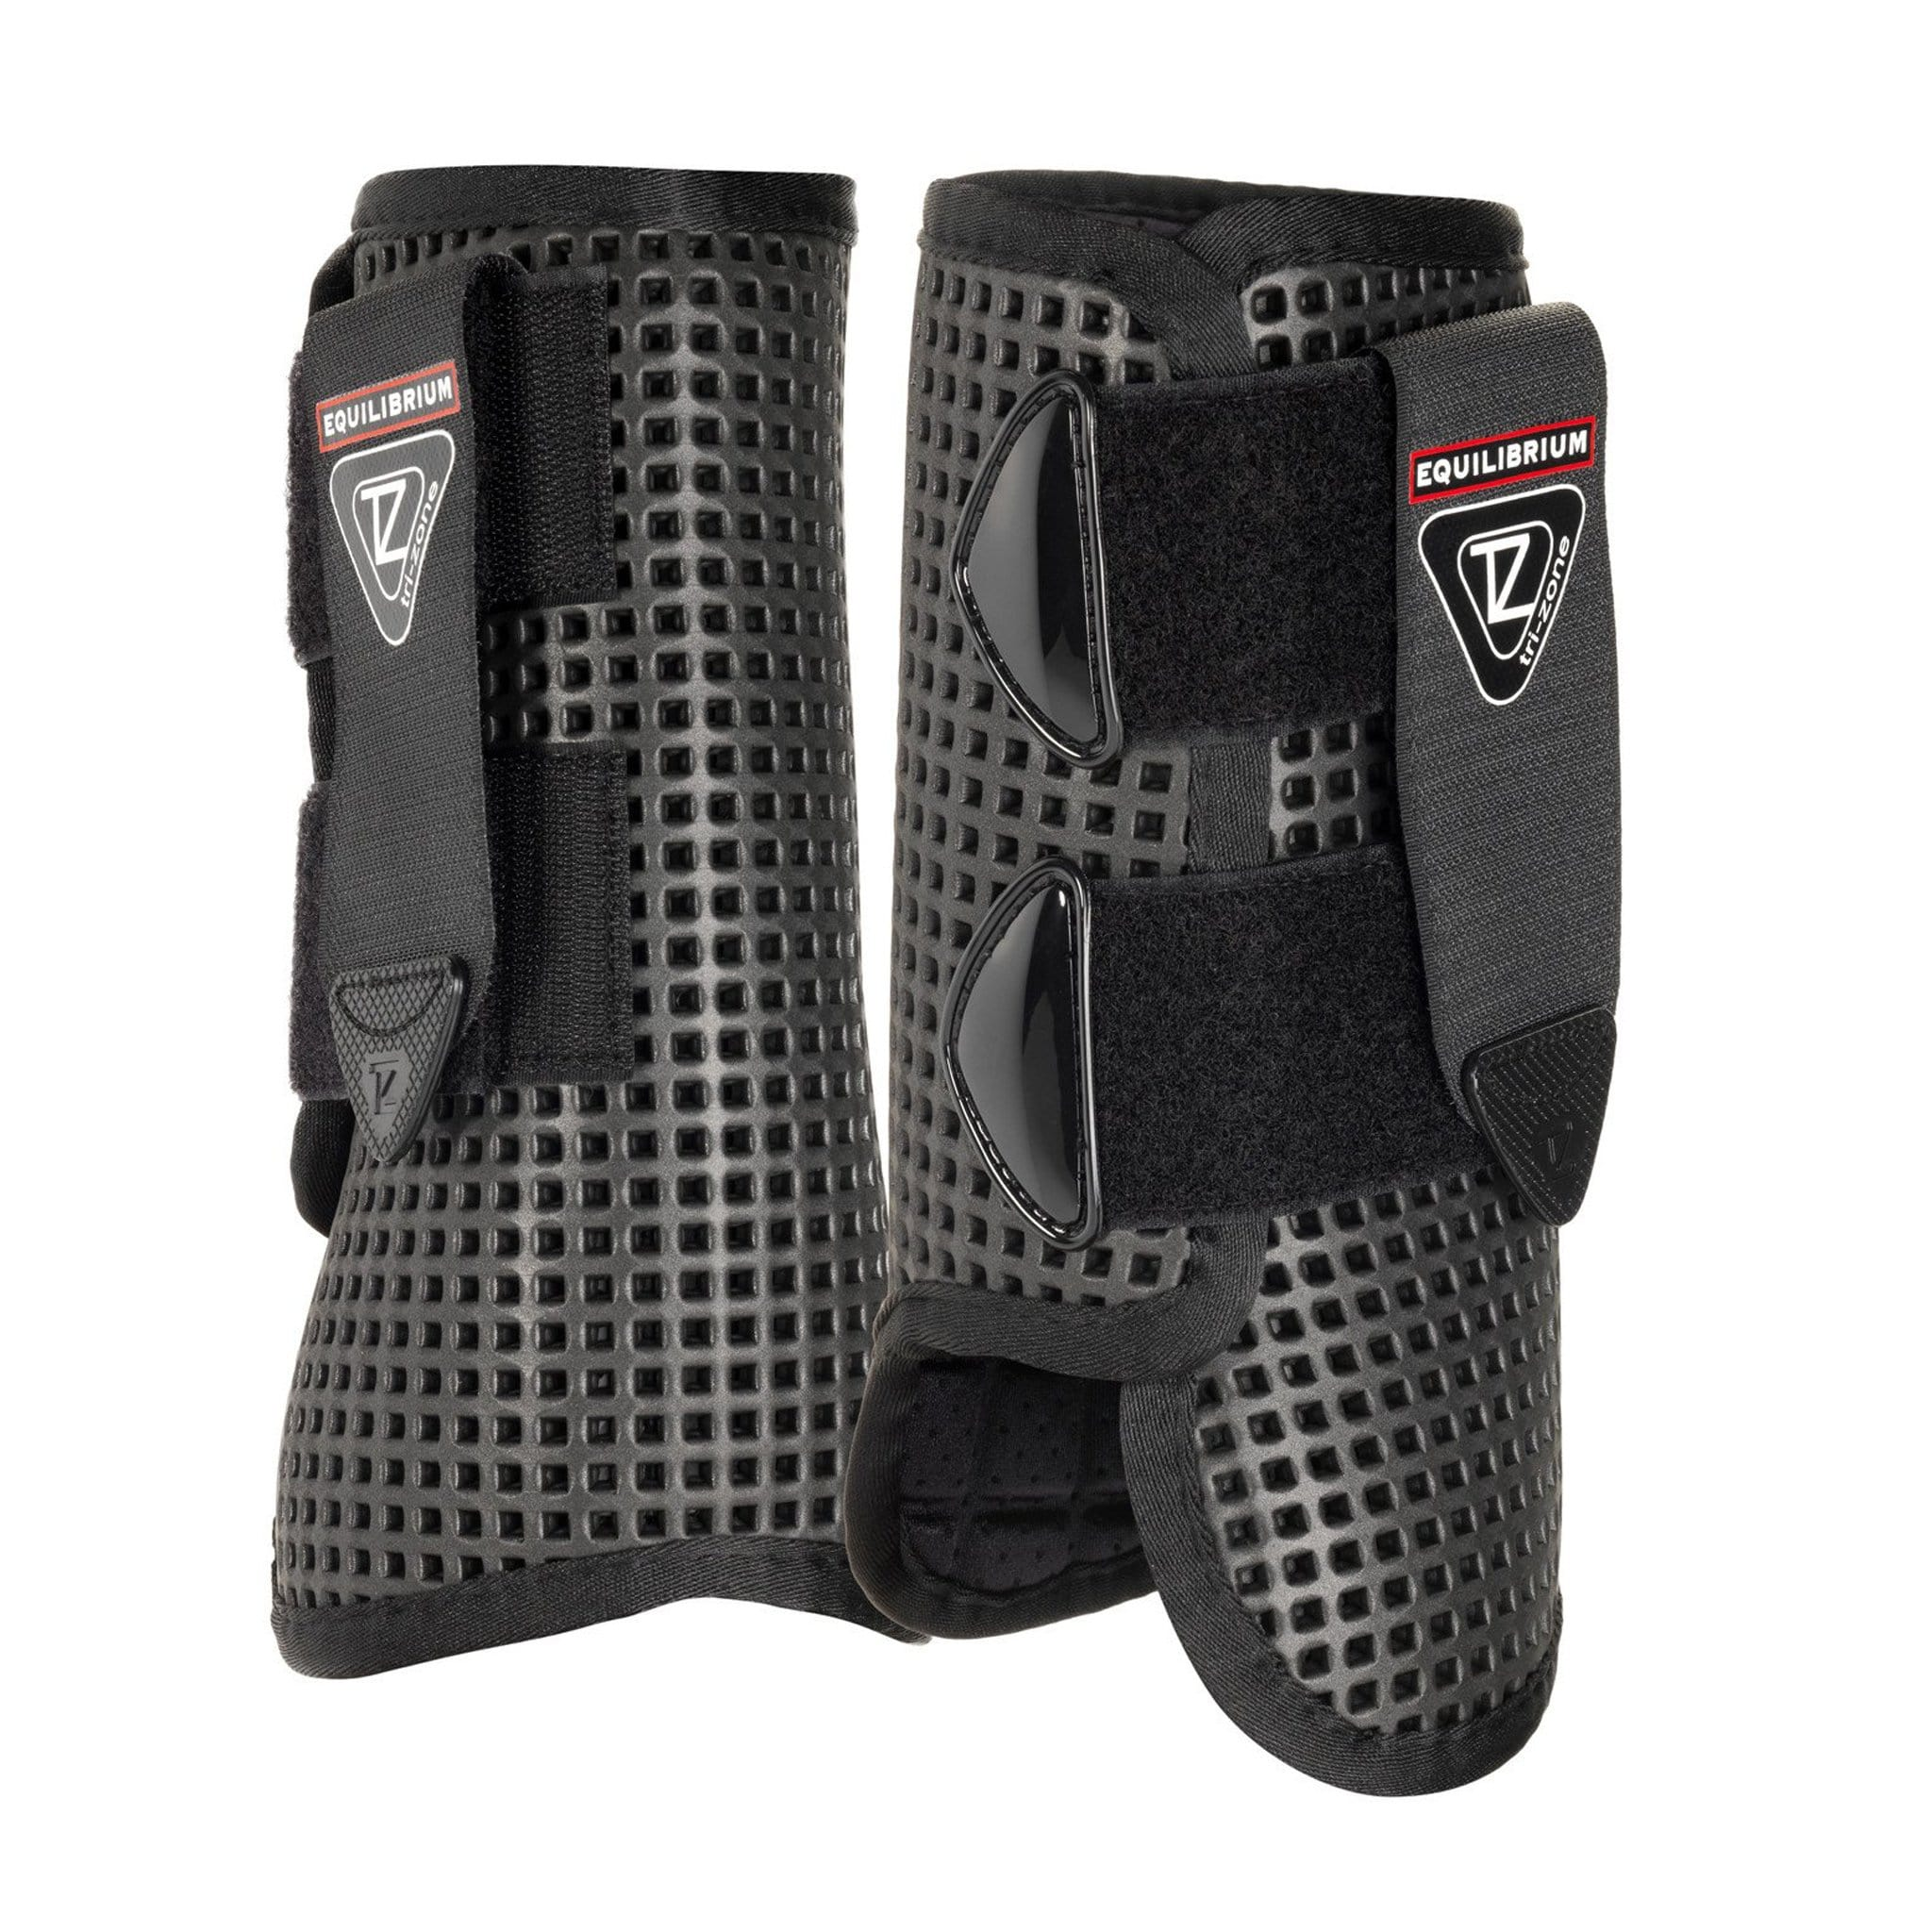 Equilibrium Tri-Zone All Sports Boot Black